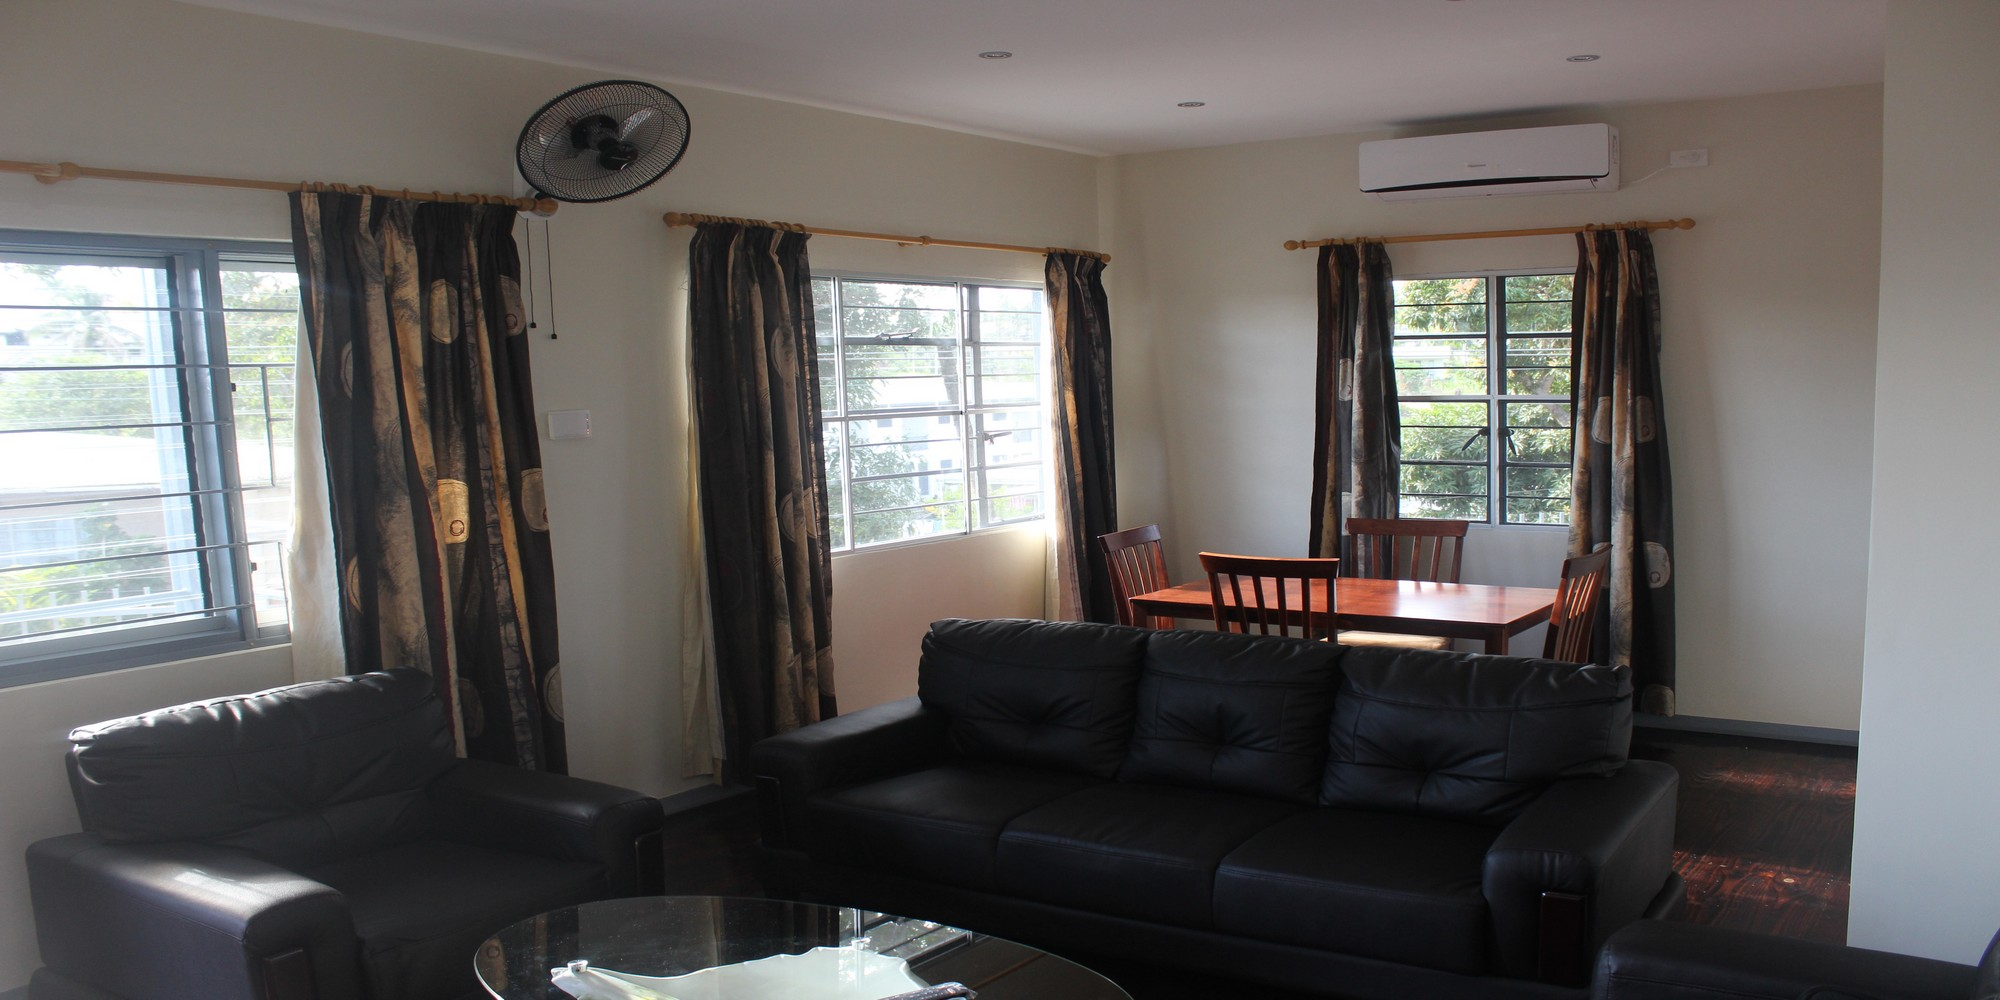 Rent this 2 minutes from CBD property